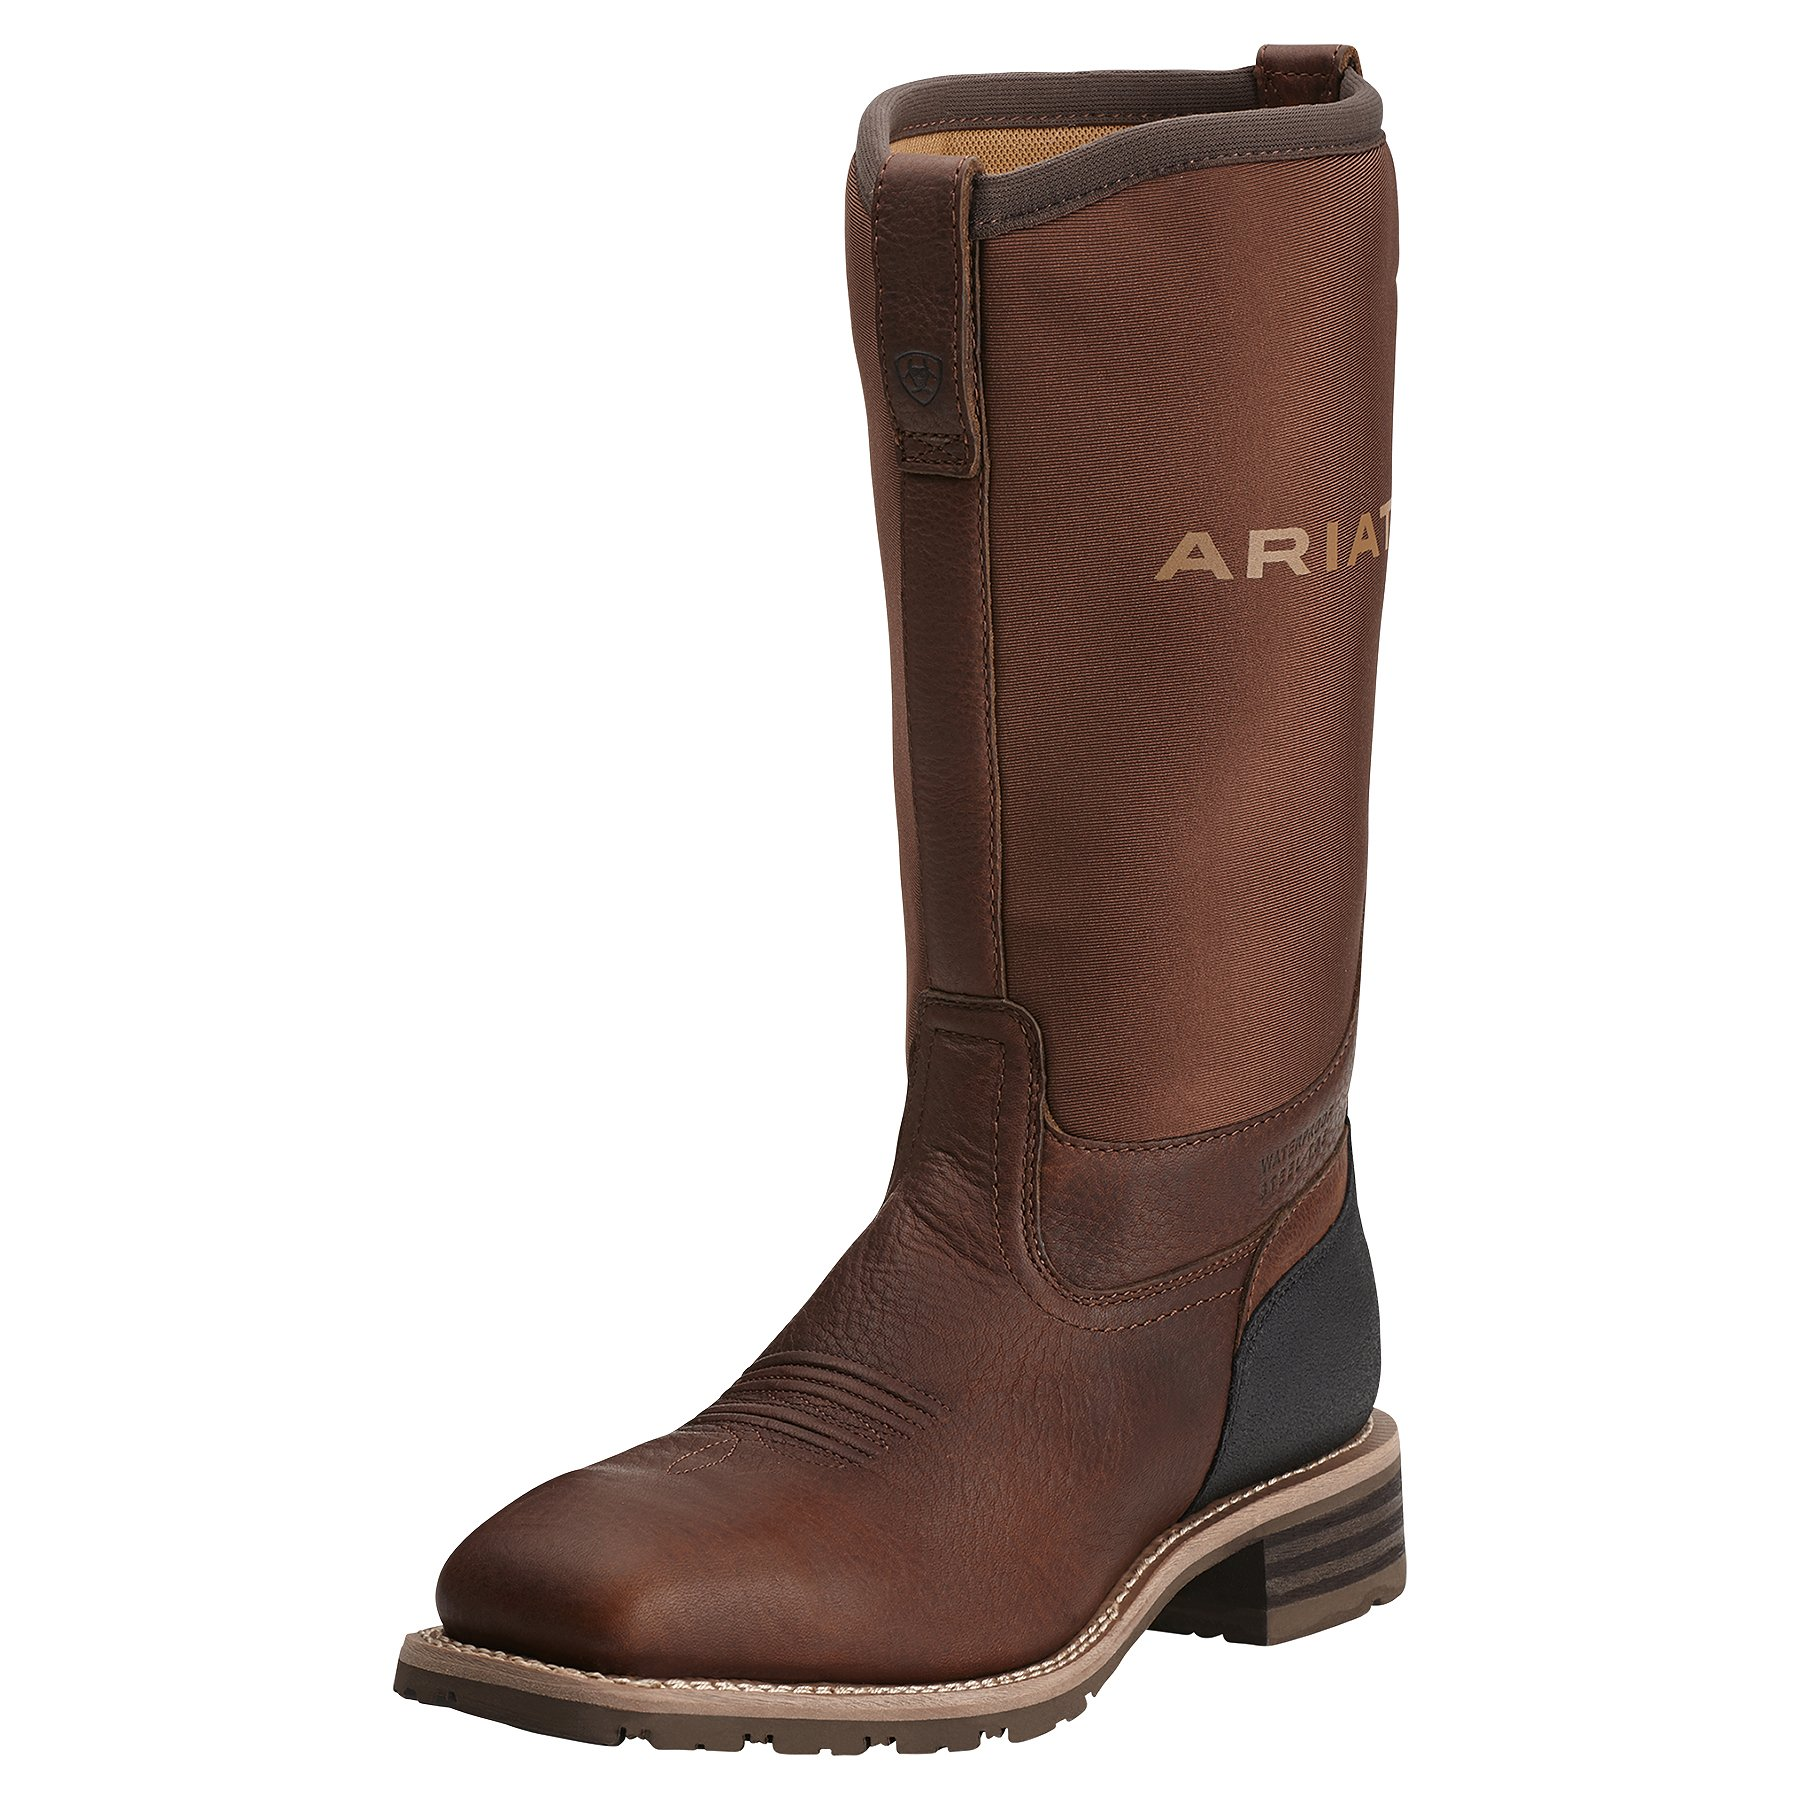 Ariat Hybrid All Weather Steel Toe